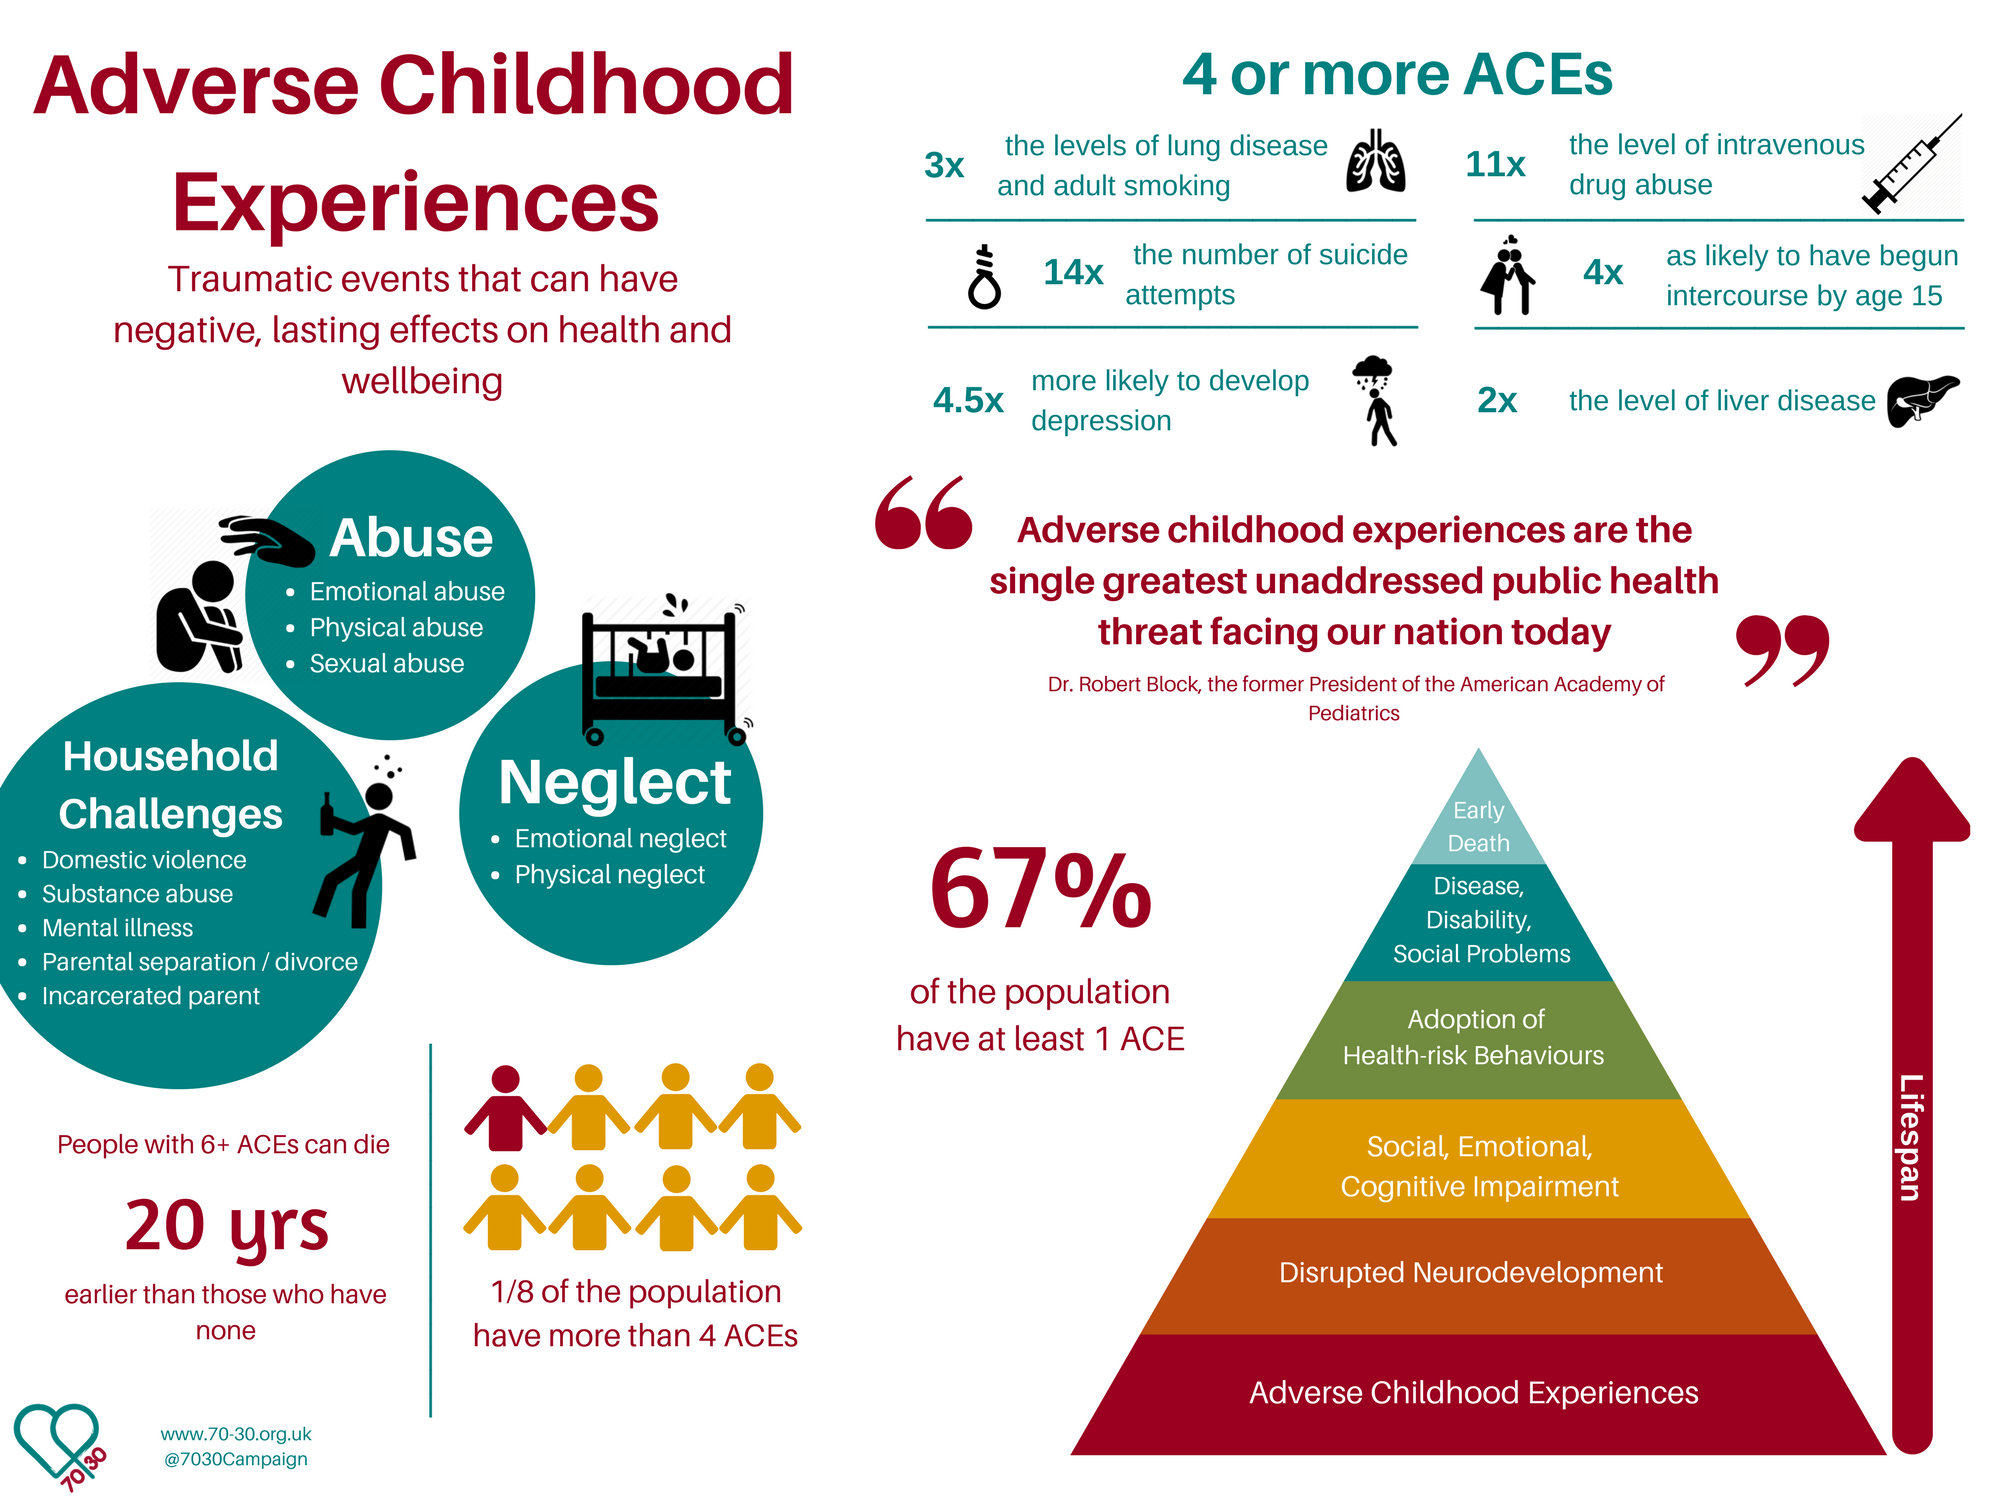 Adverse-Childhood-Experiences-1-logo.png